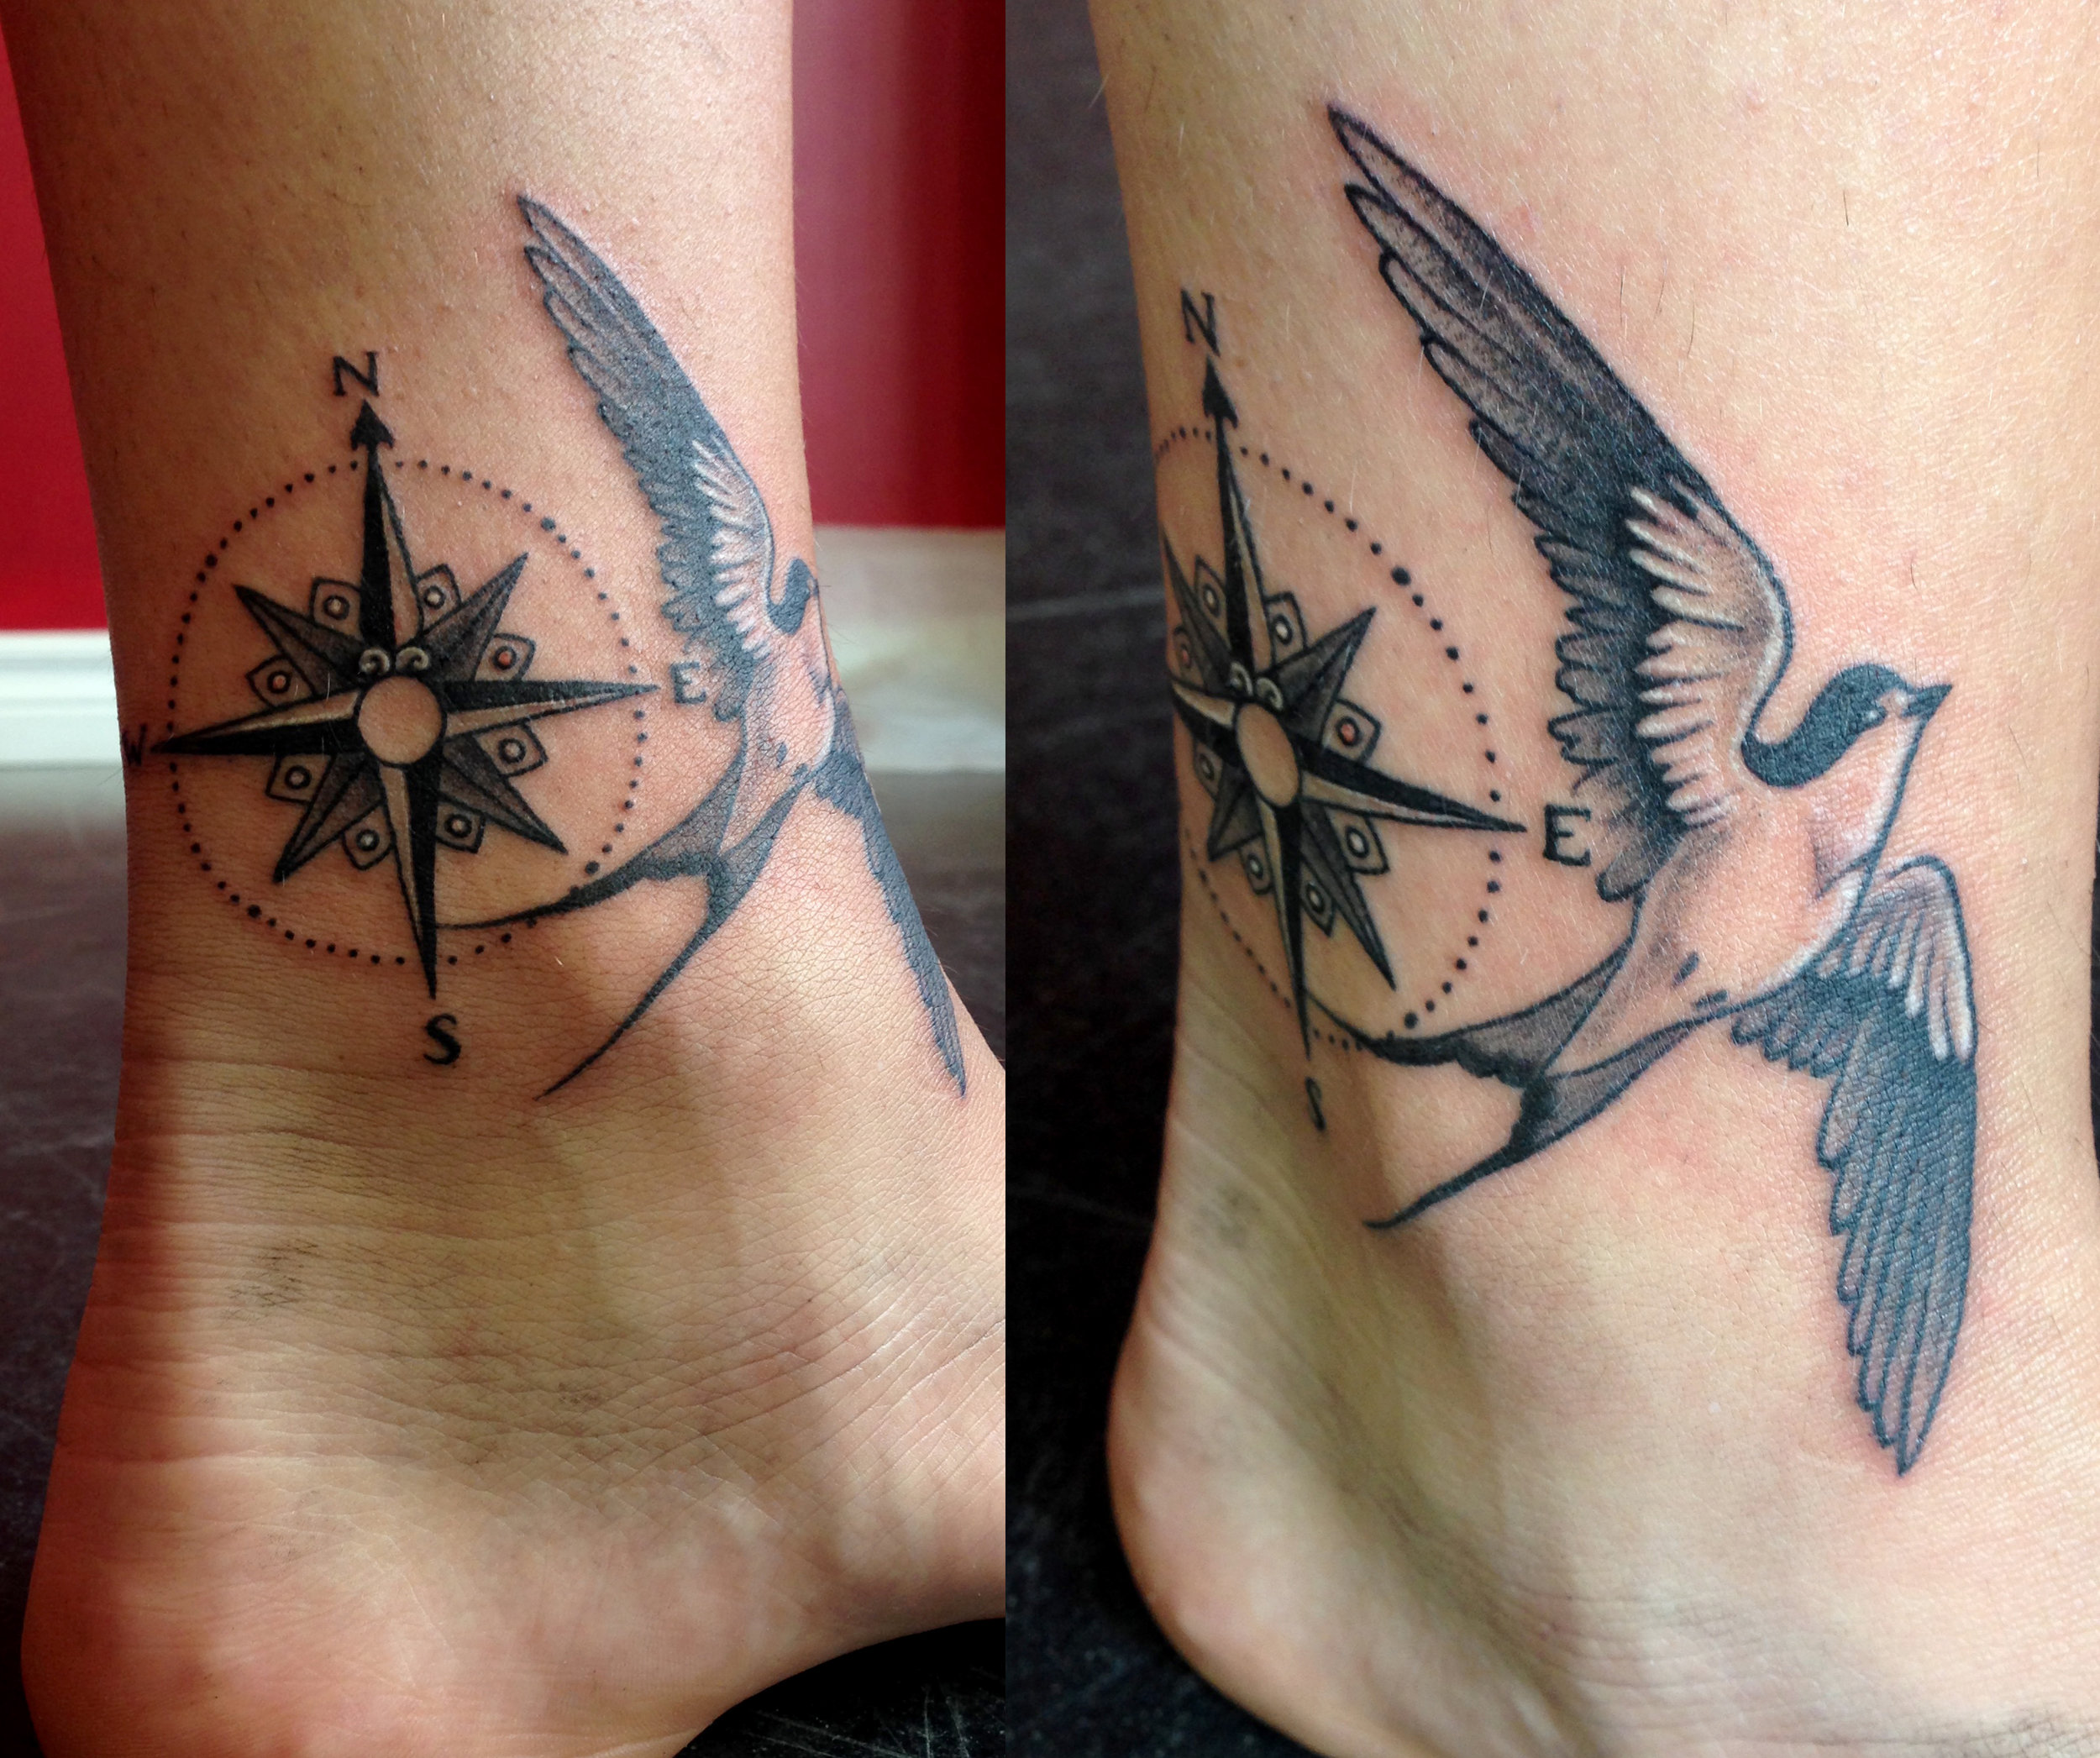 Danielle's bird and compass